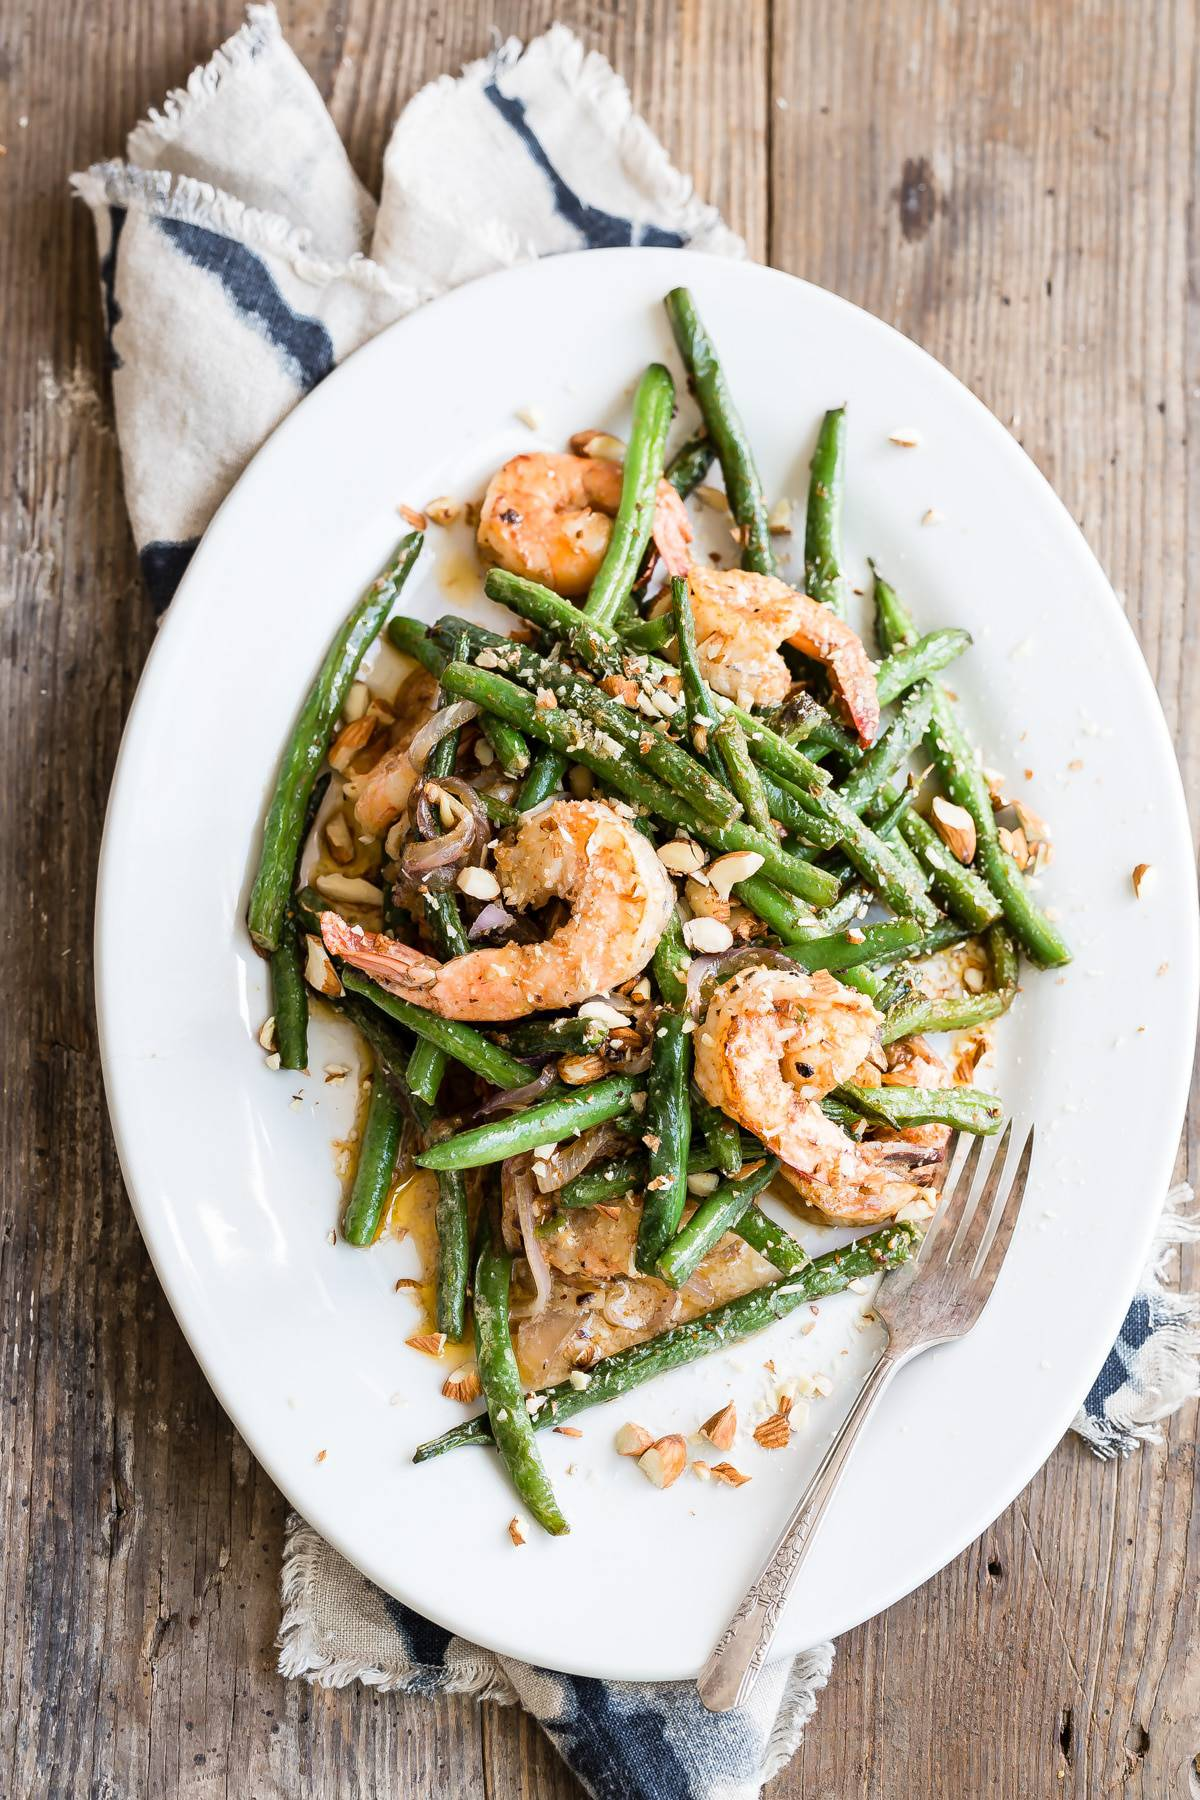 Shrimp with green beans and coconut milk